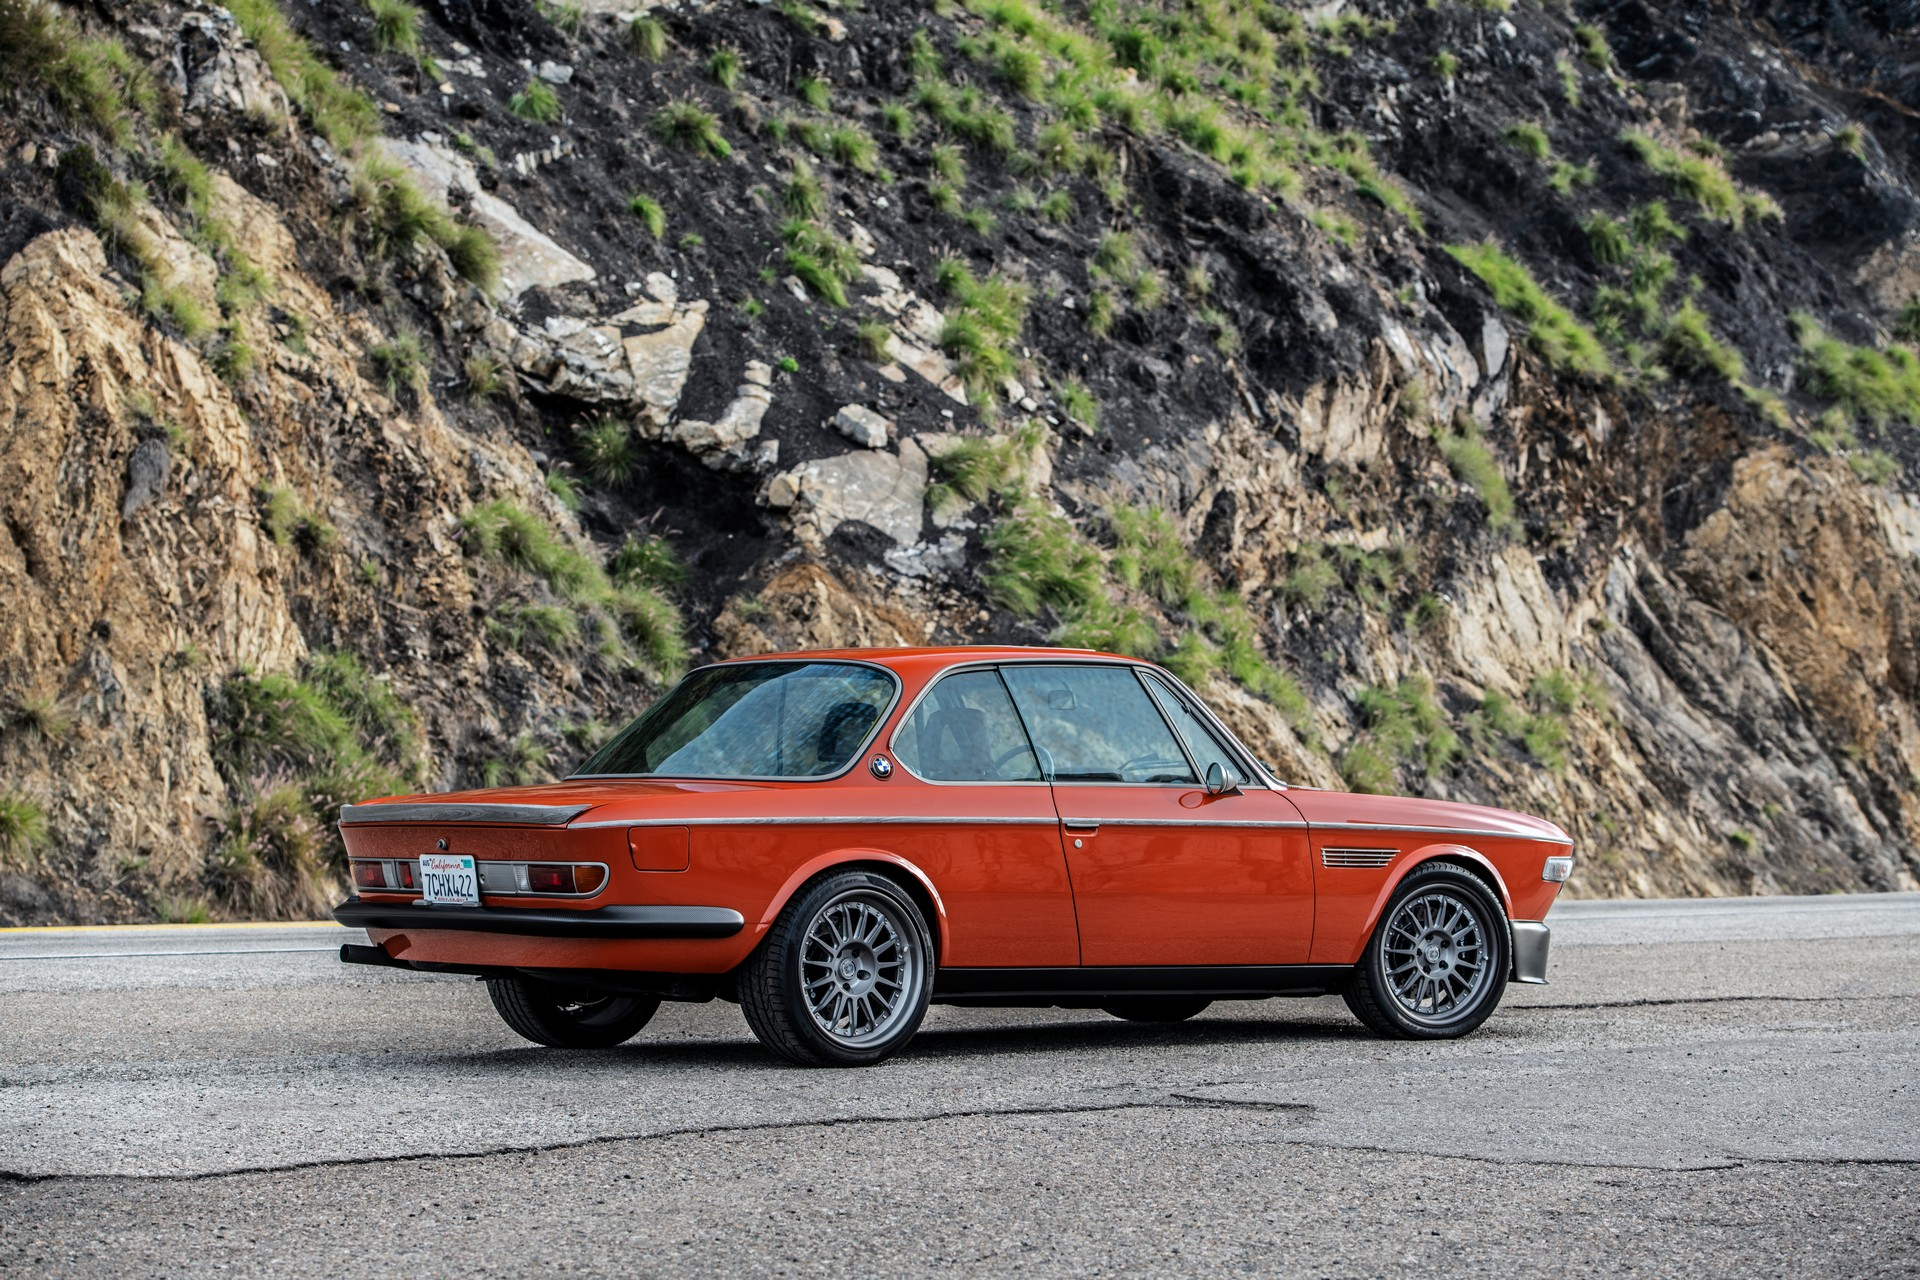 SPEEDKORE-1974-BMW-3.0-CS-9